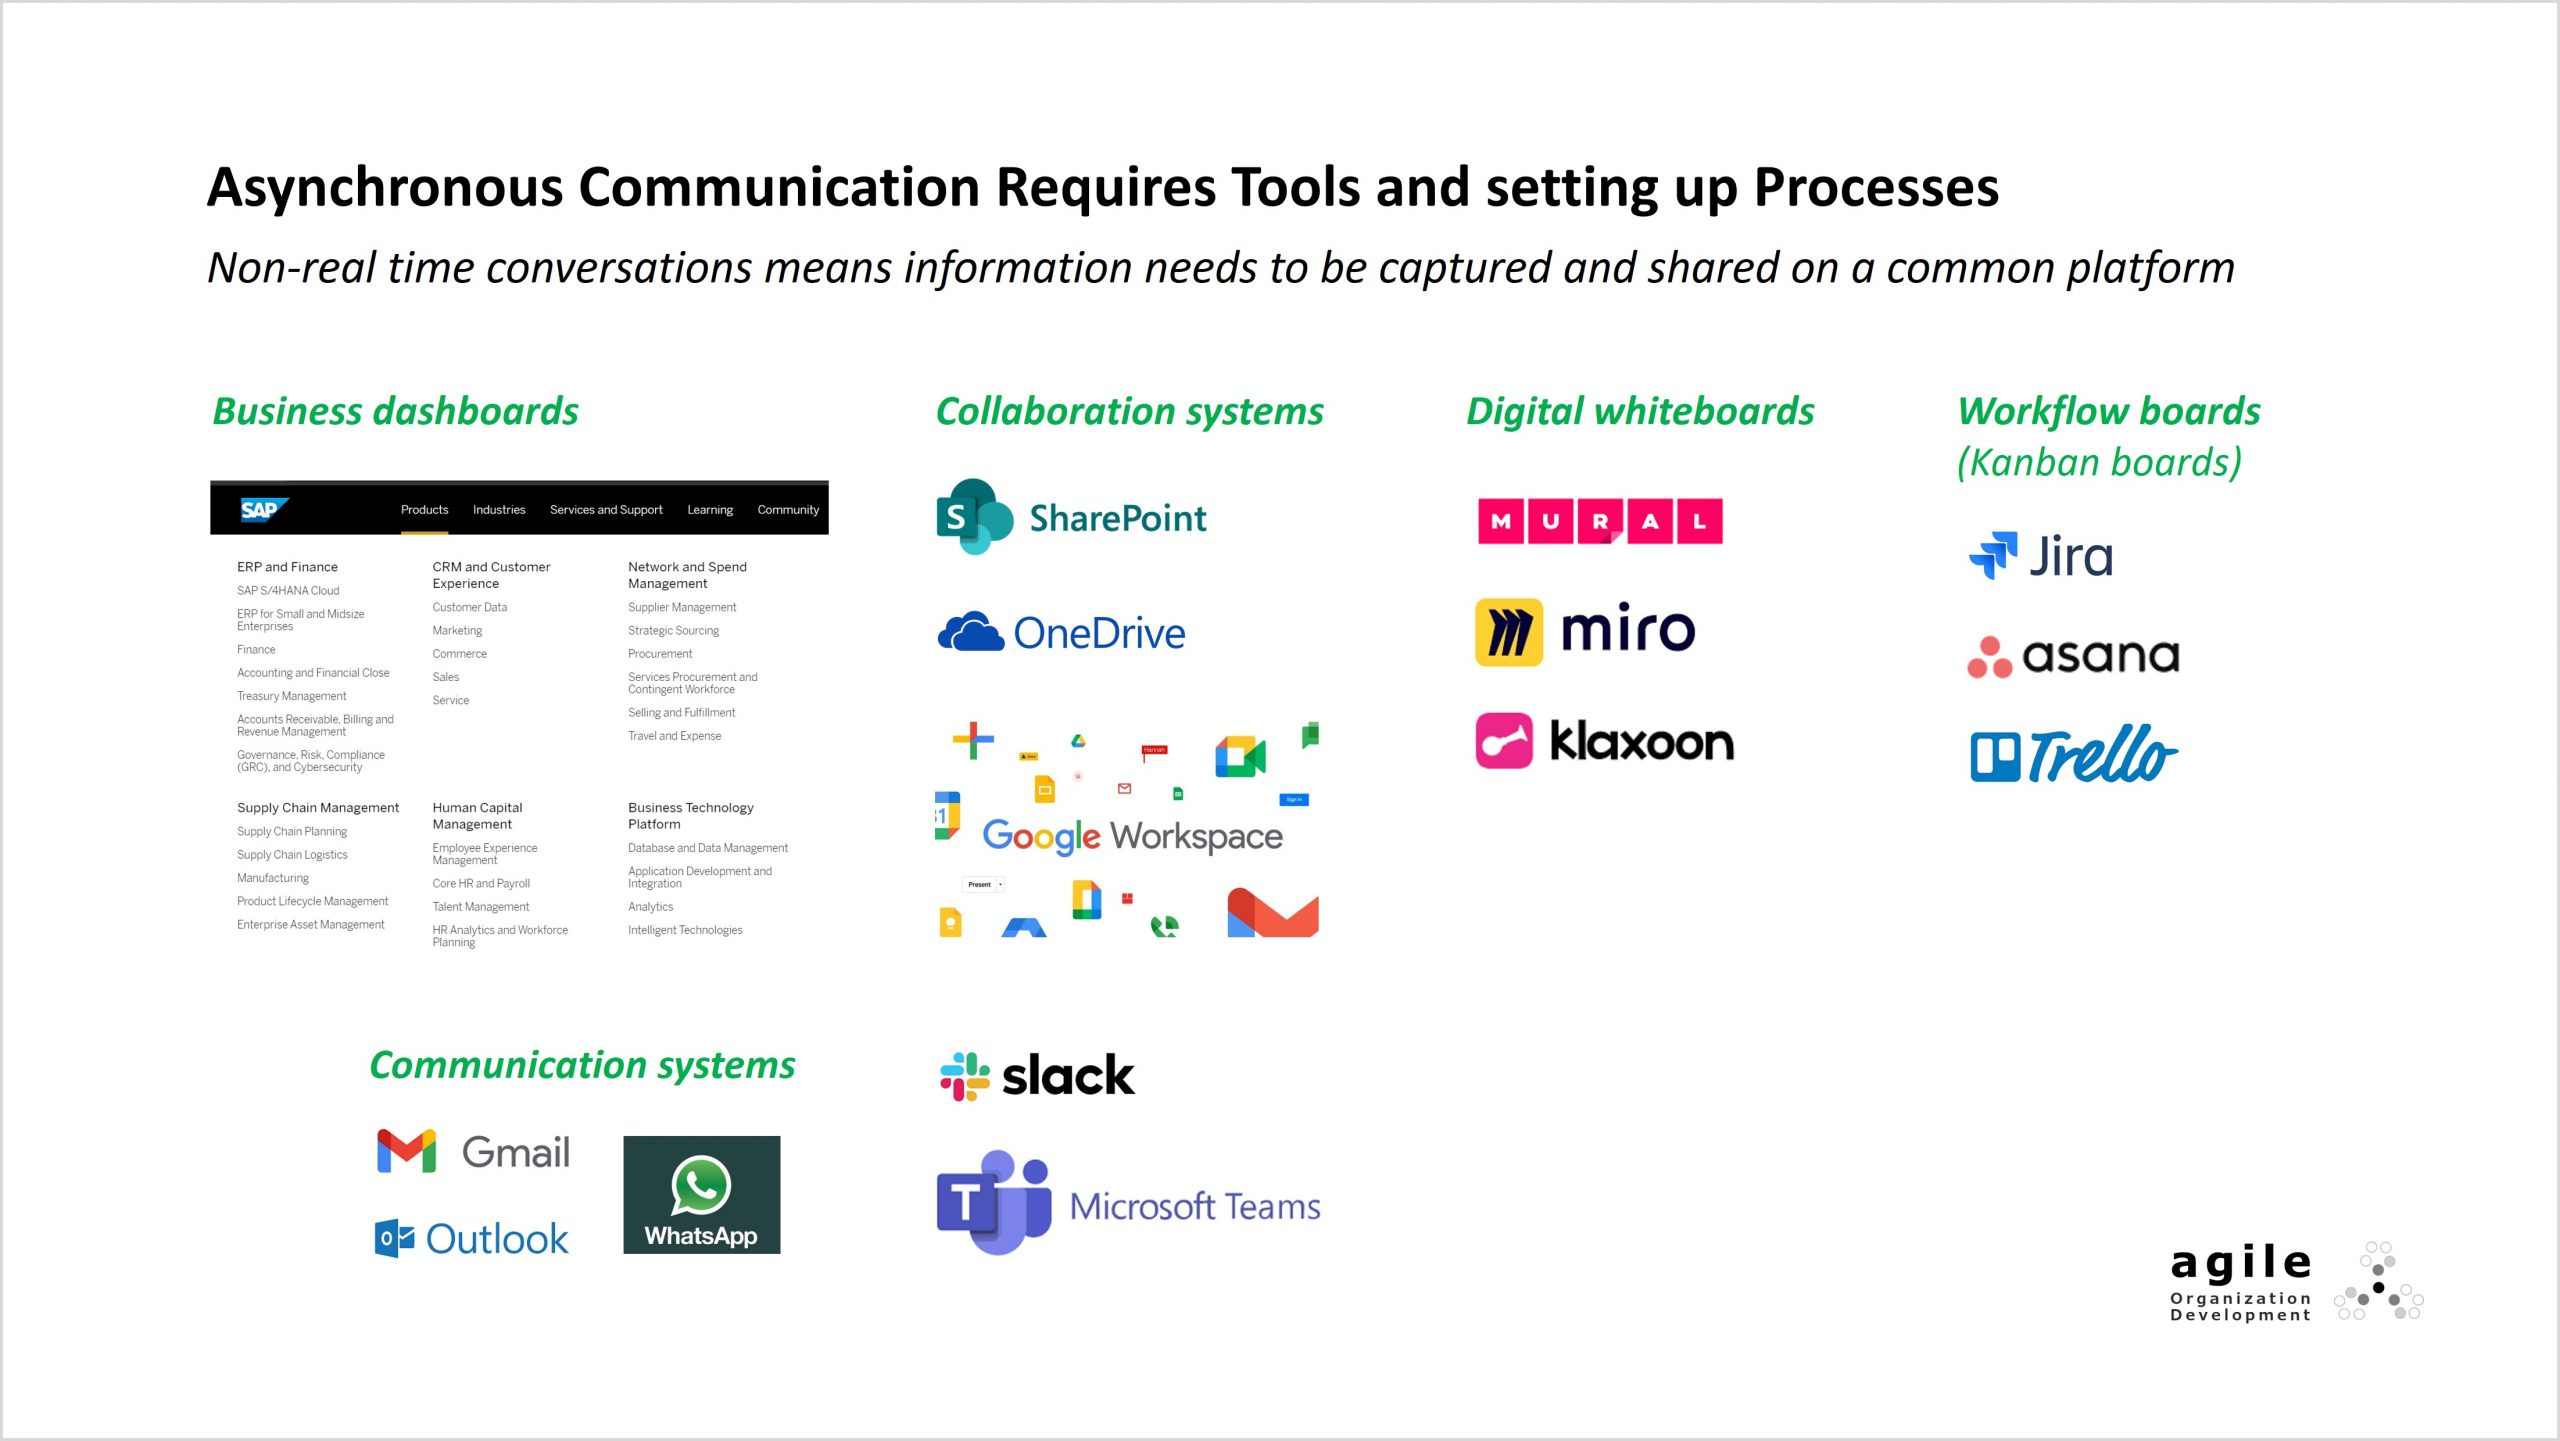 Asynchronous commmunications require tools and processes